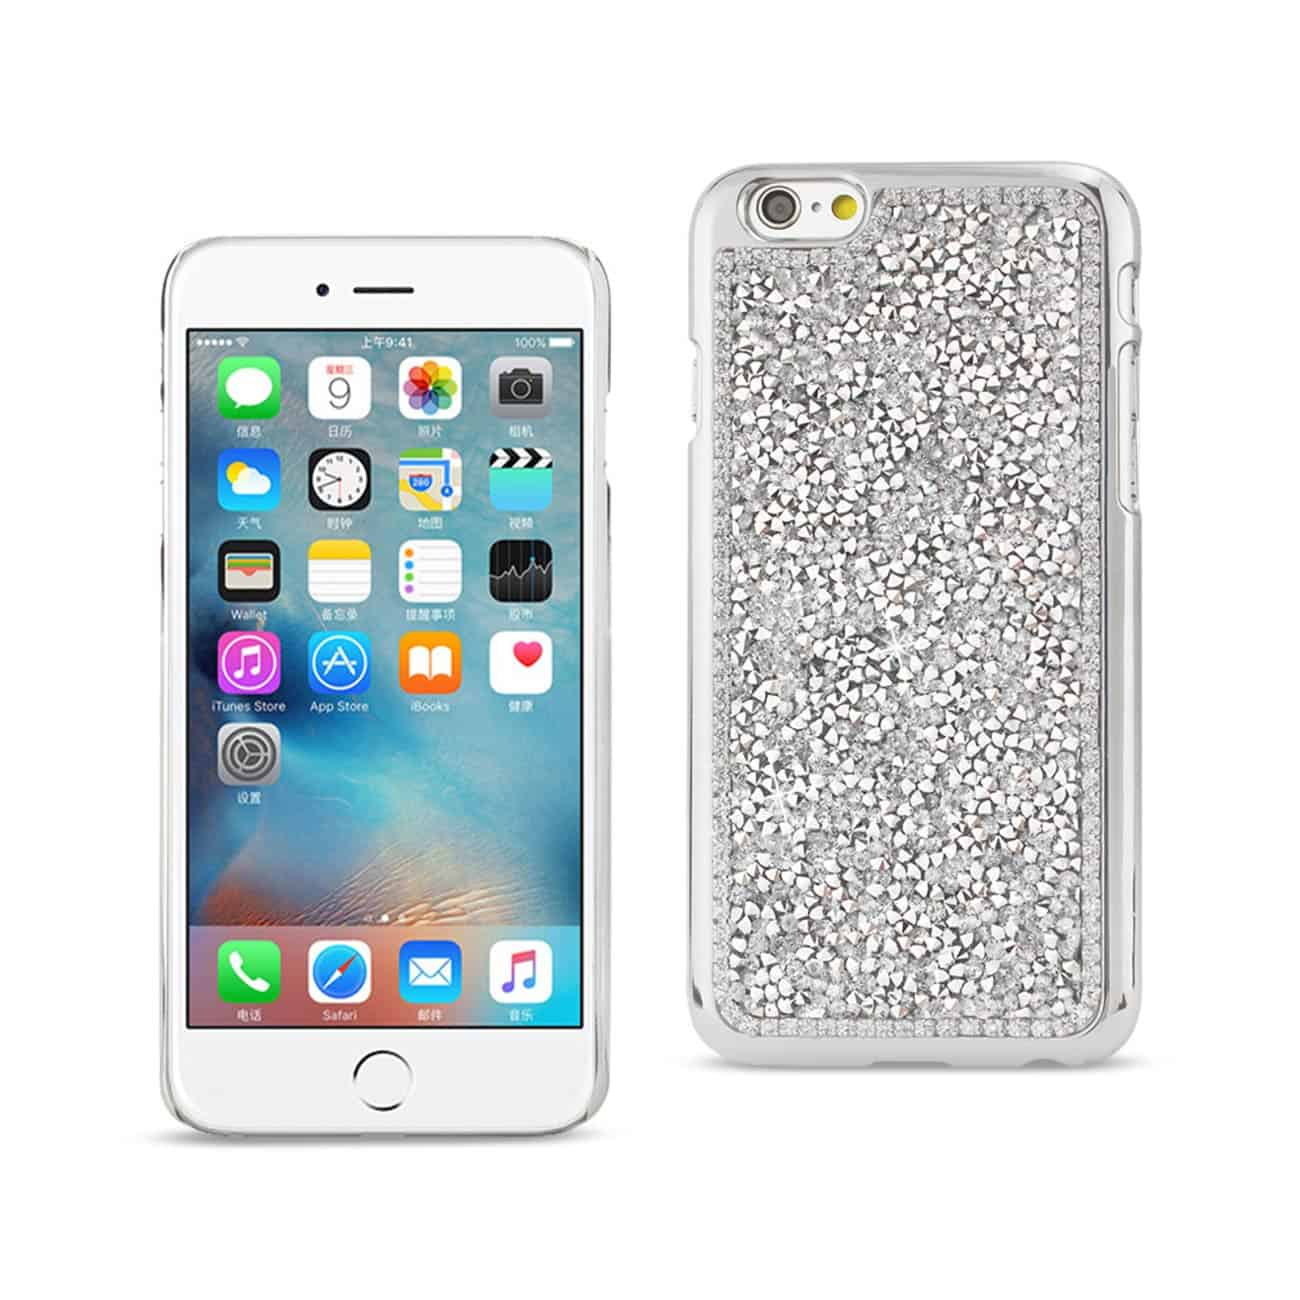 IPHONE 6S/ IPHONE 6 JEWELRY BLING RHINESTONE CASE IN SILVER